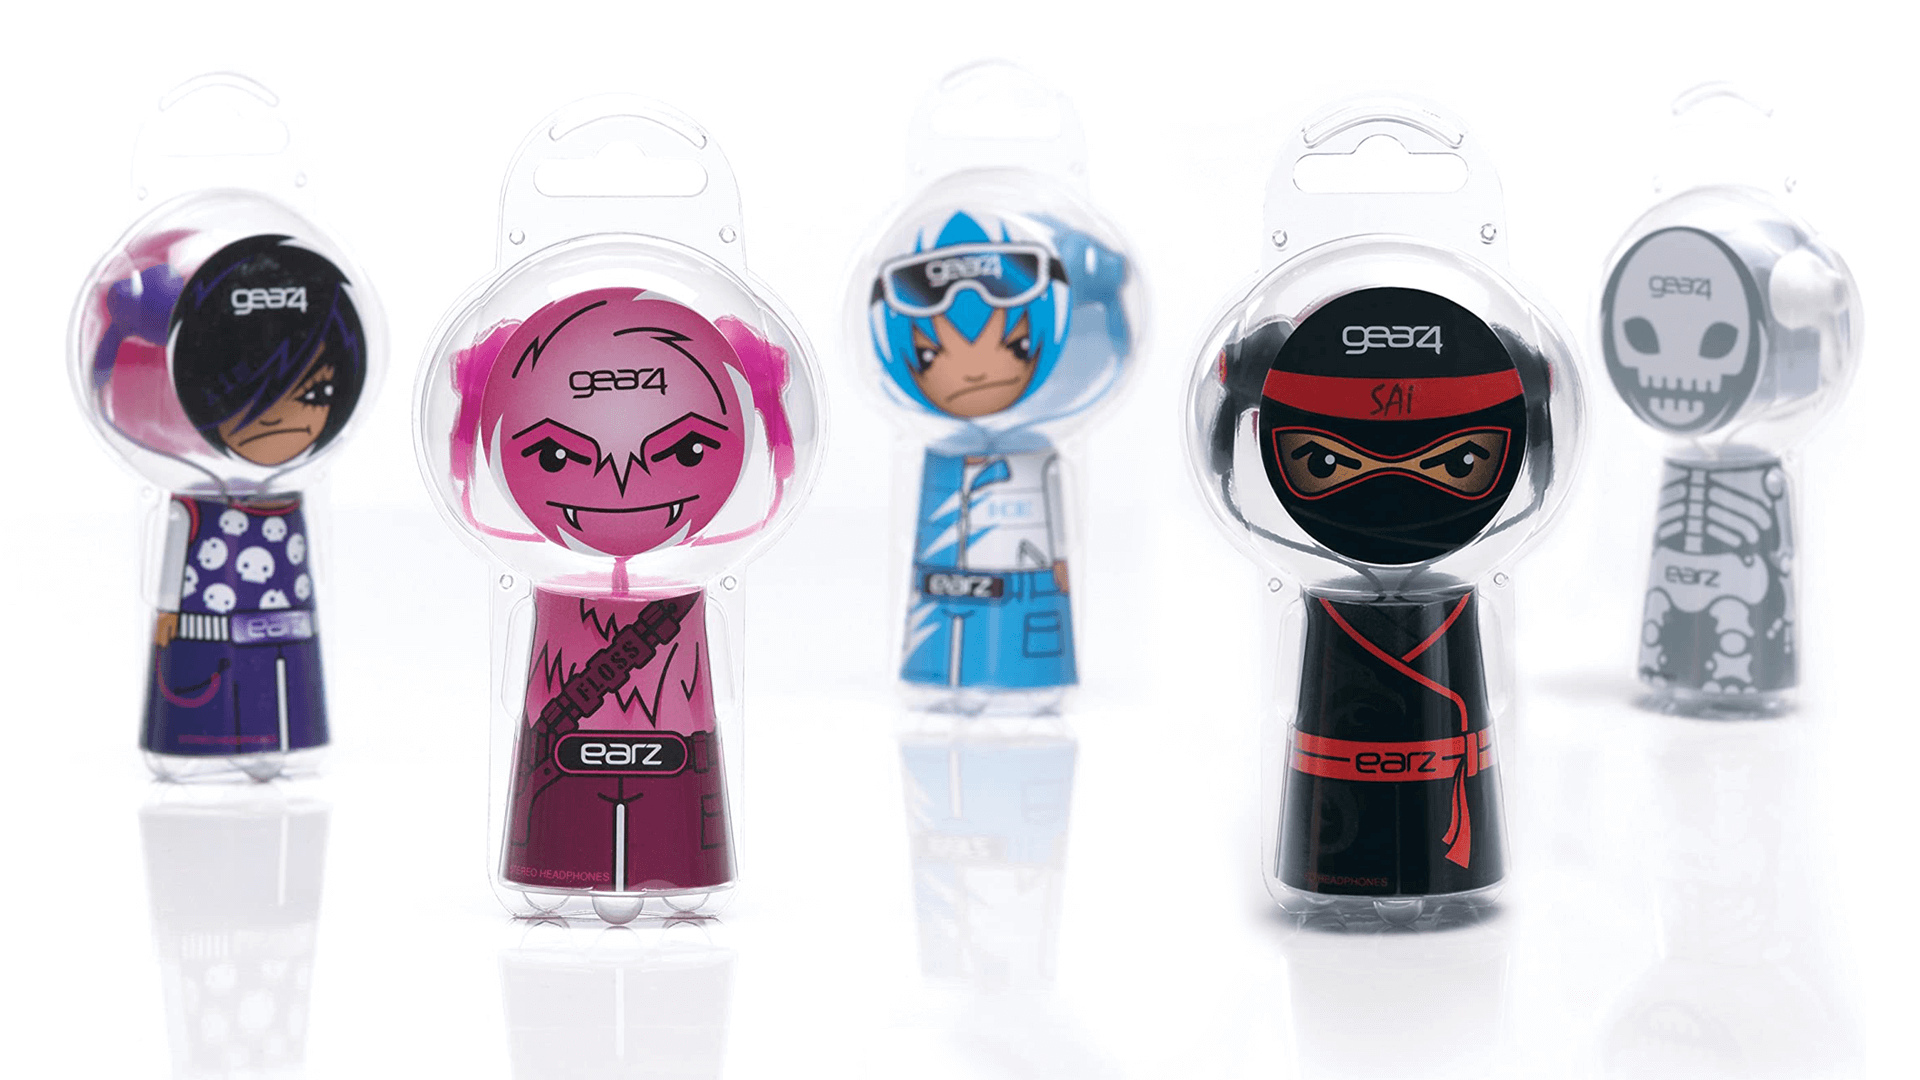 Mutiny Agency worked with Gear 4 to design the packaging and create characters for a children's range of headphones called EARZ. Funky packaging and youthful character design created a successful headphone range reflective of youth market and depicts musical tastes and connects with a younger market with fun and engaging packaging design and character design and illustrations created by Mutiny Agency.